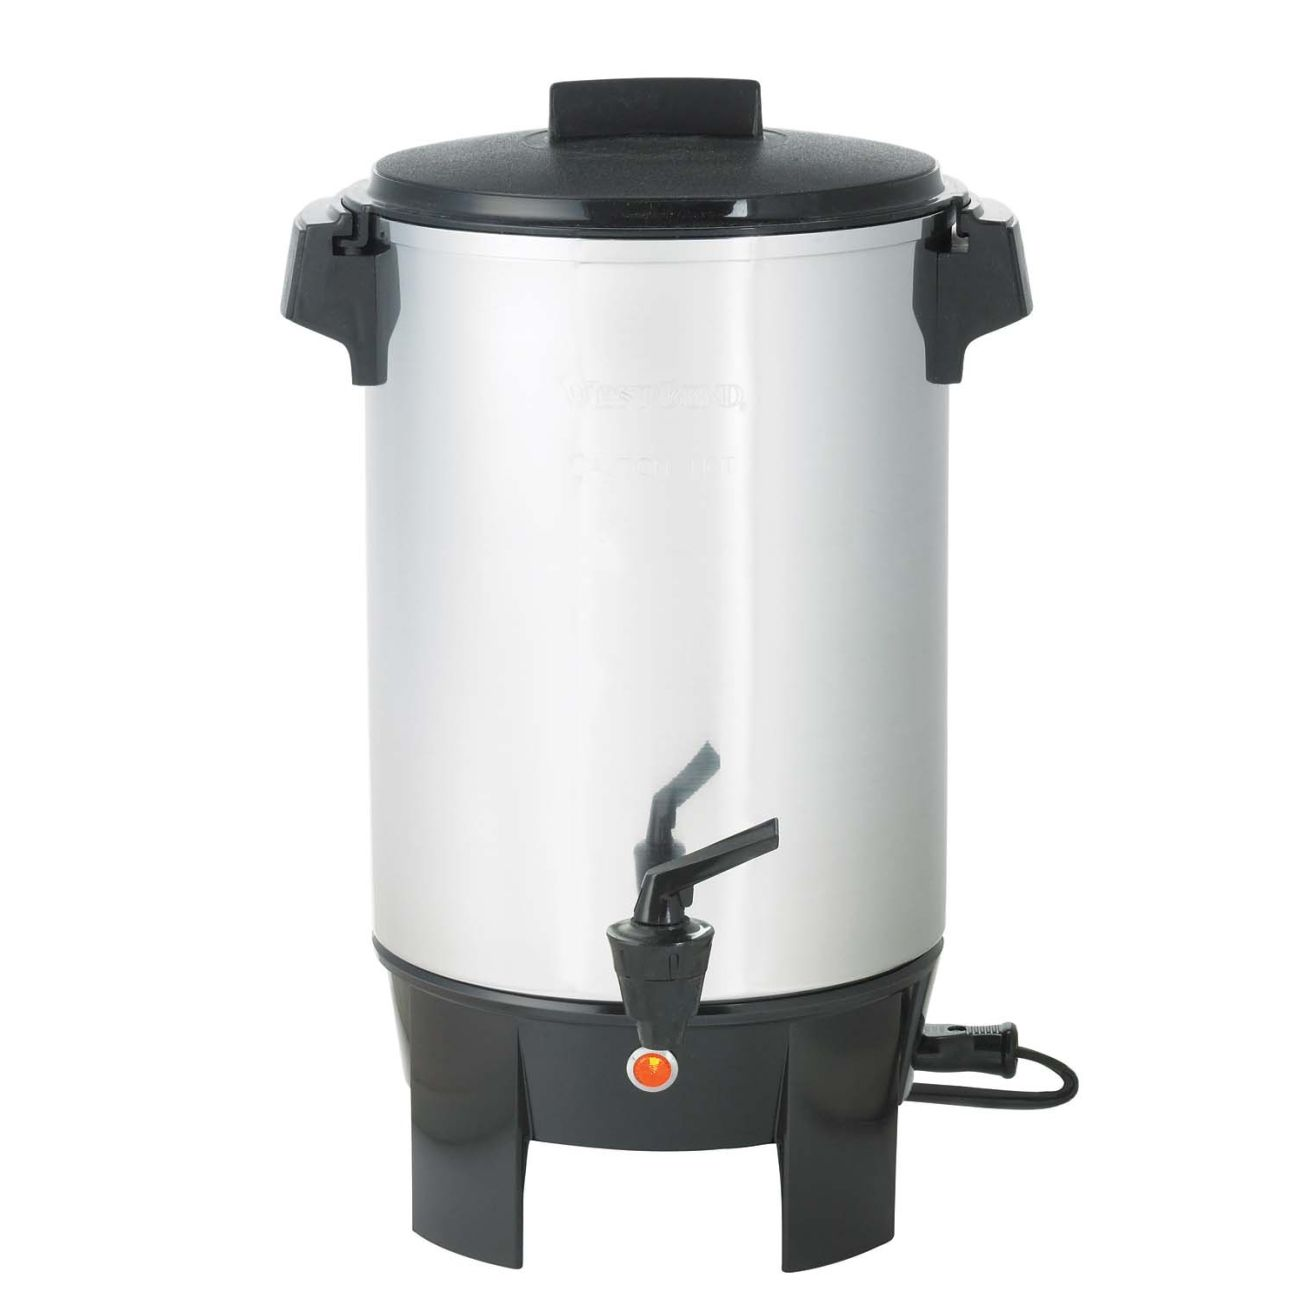 Best Electric Coffee Maker West Bend Electric Percolator Coffee Pot Electric Coffee